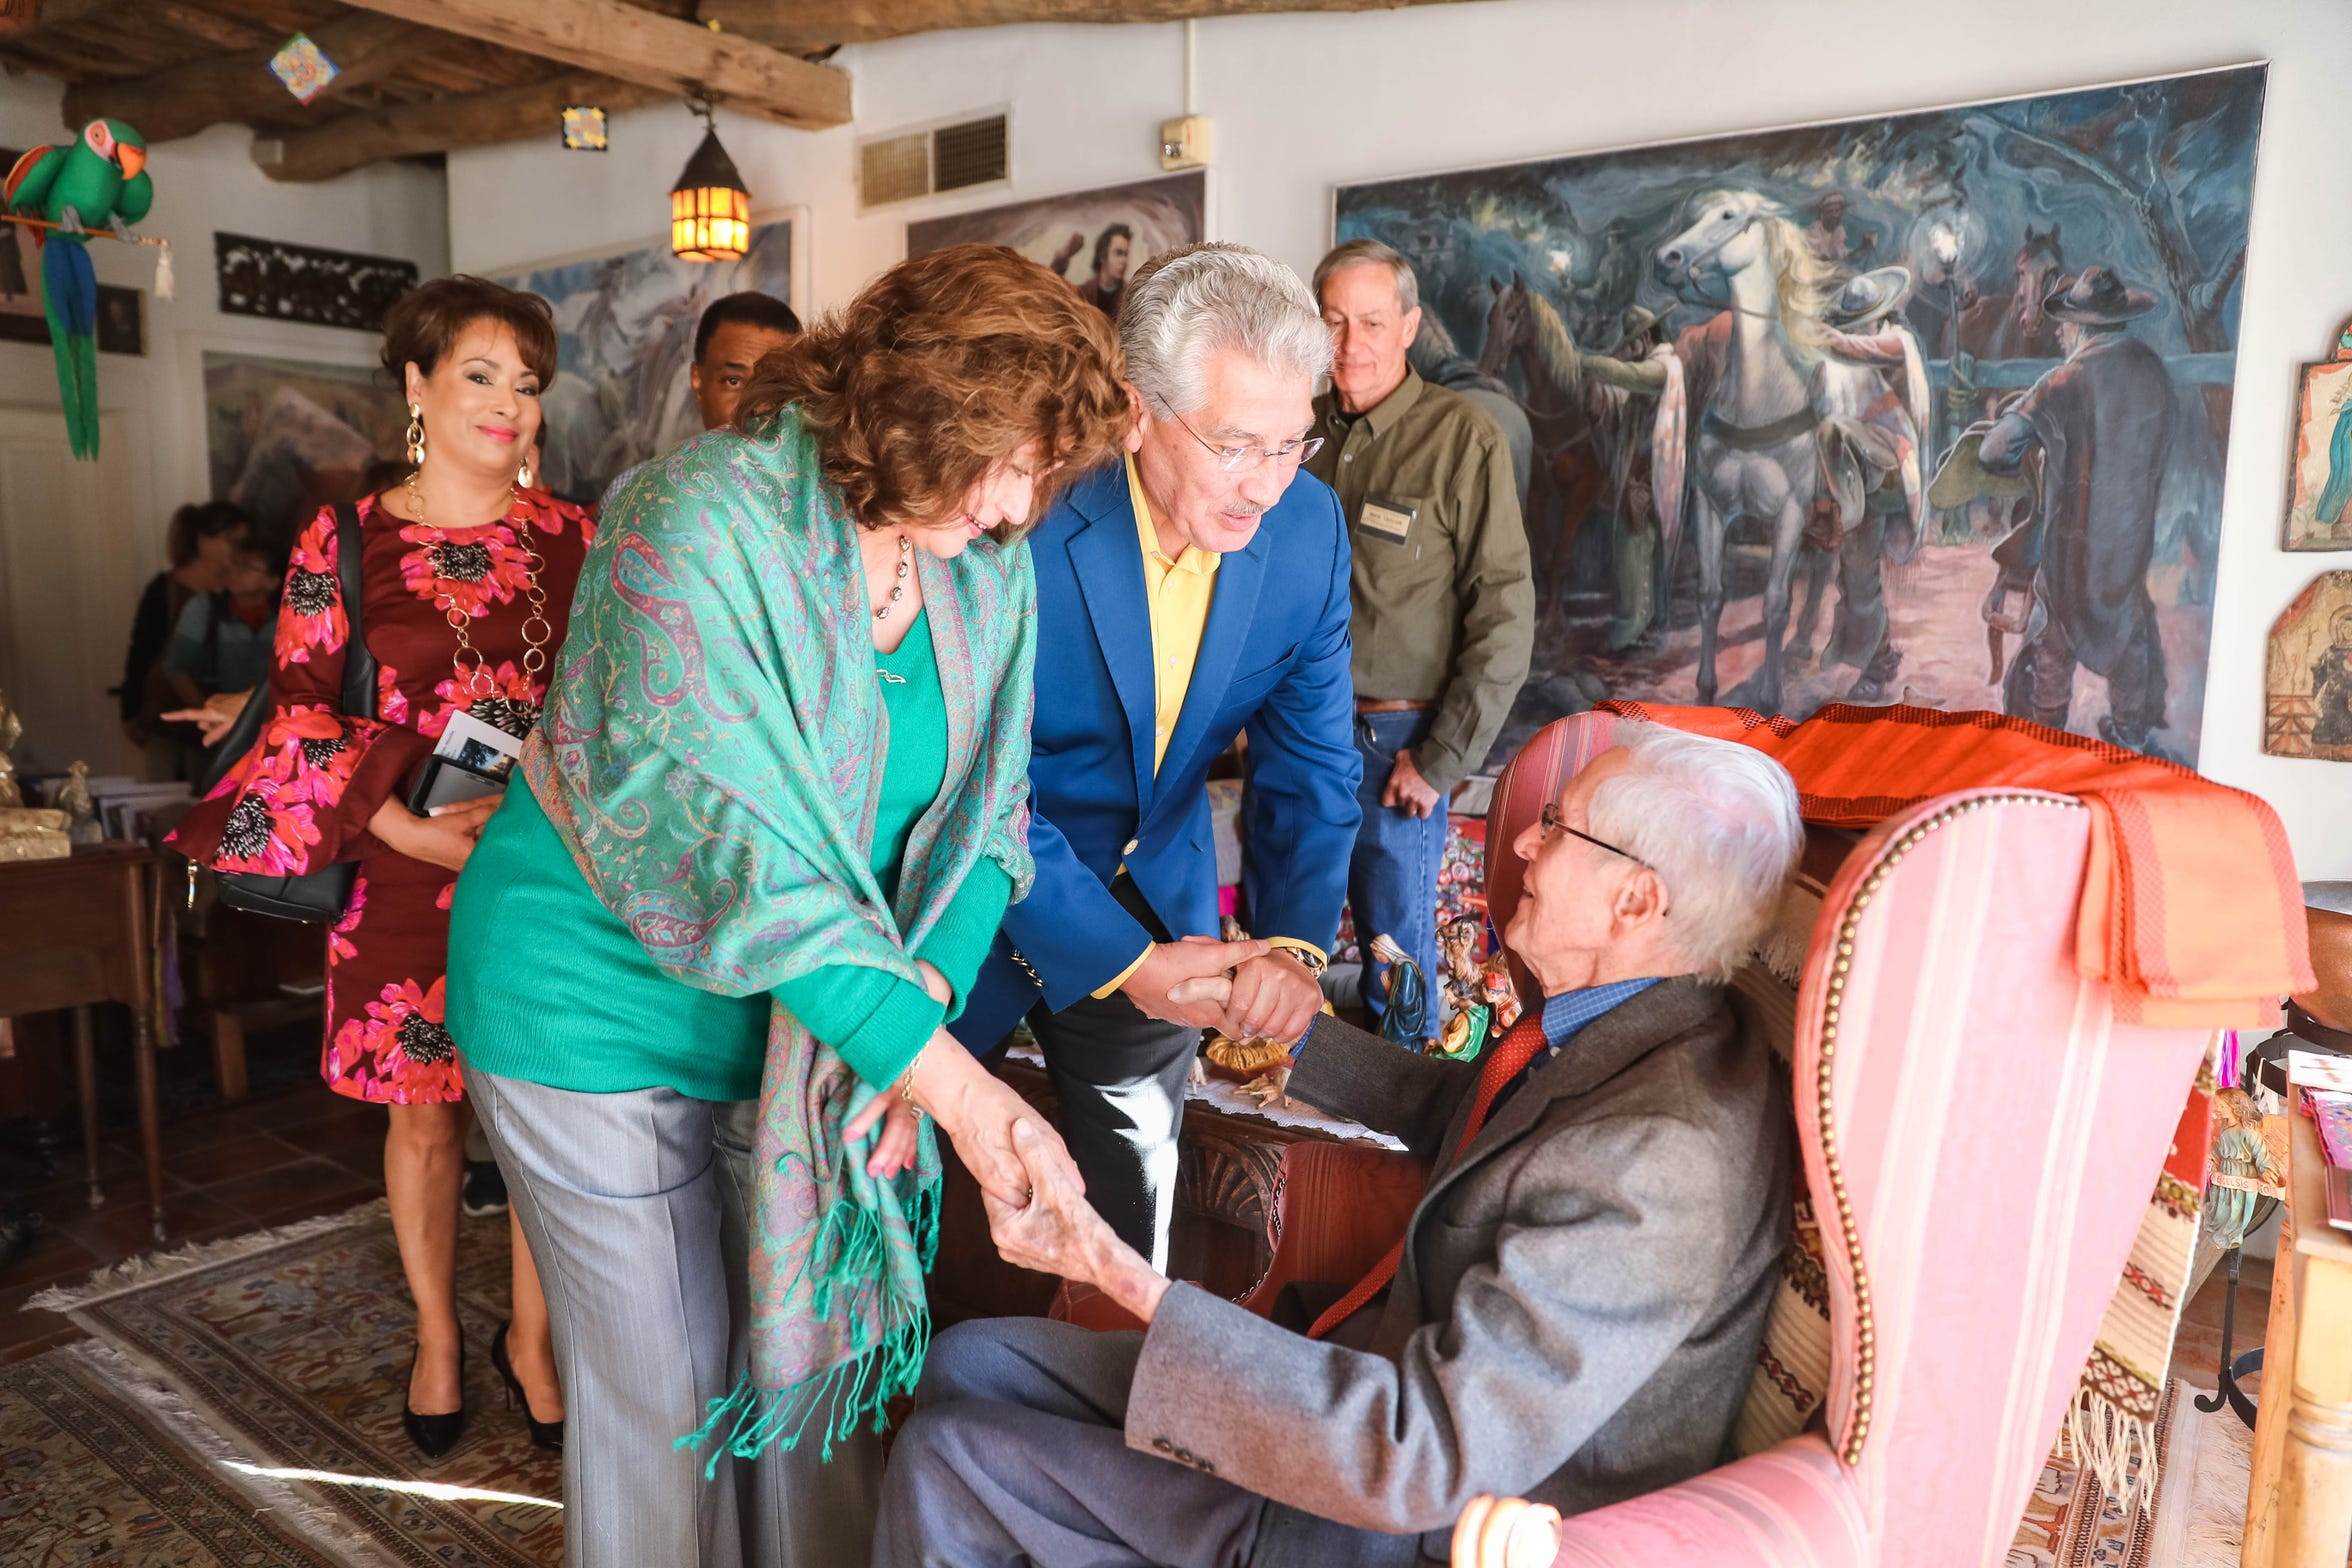 J. Paul Taylor visits with guests in his home in Mesilla on Sunday, Dec. 15, 2019.